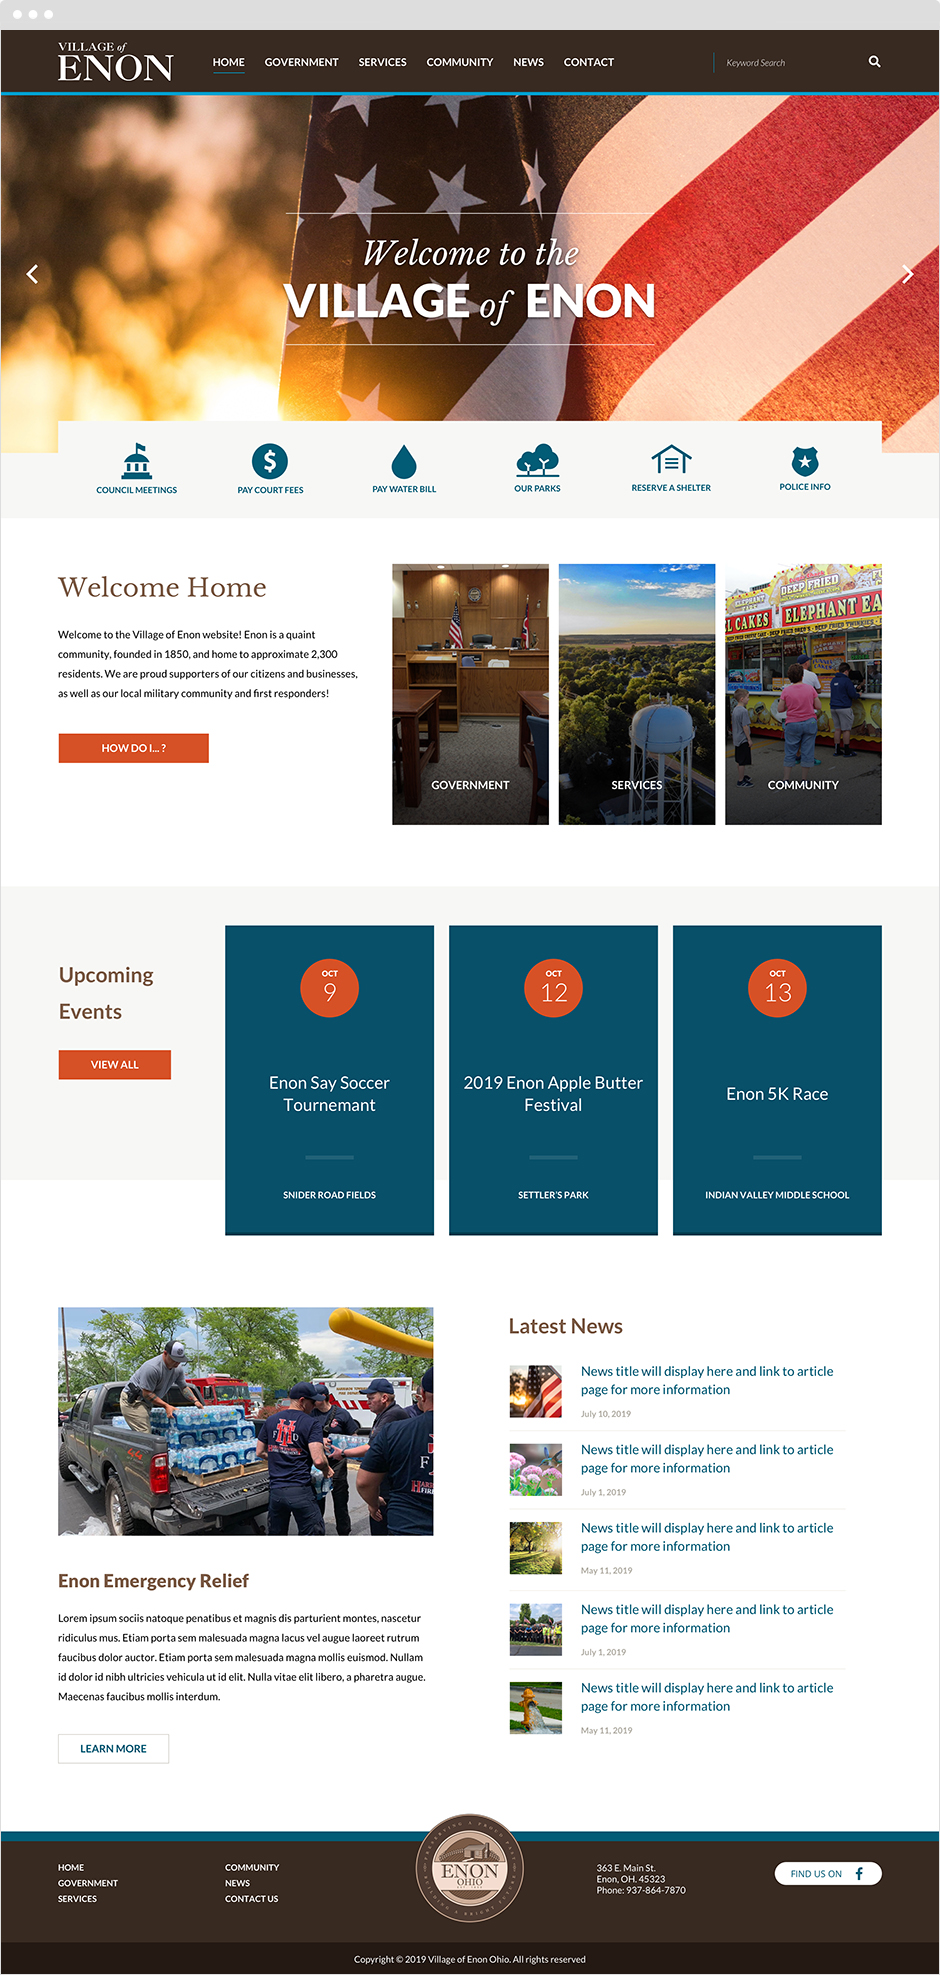 Village of Enon, Ohio Government Website Design